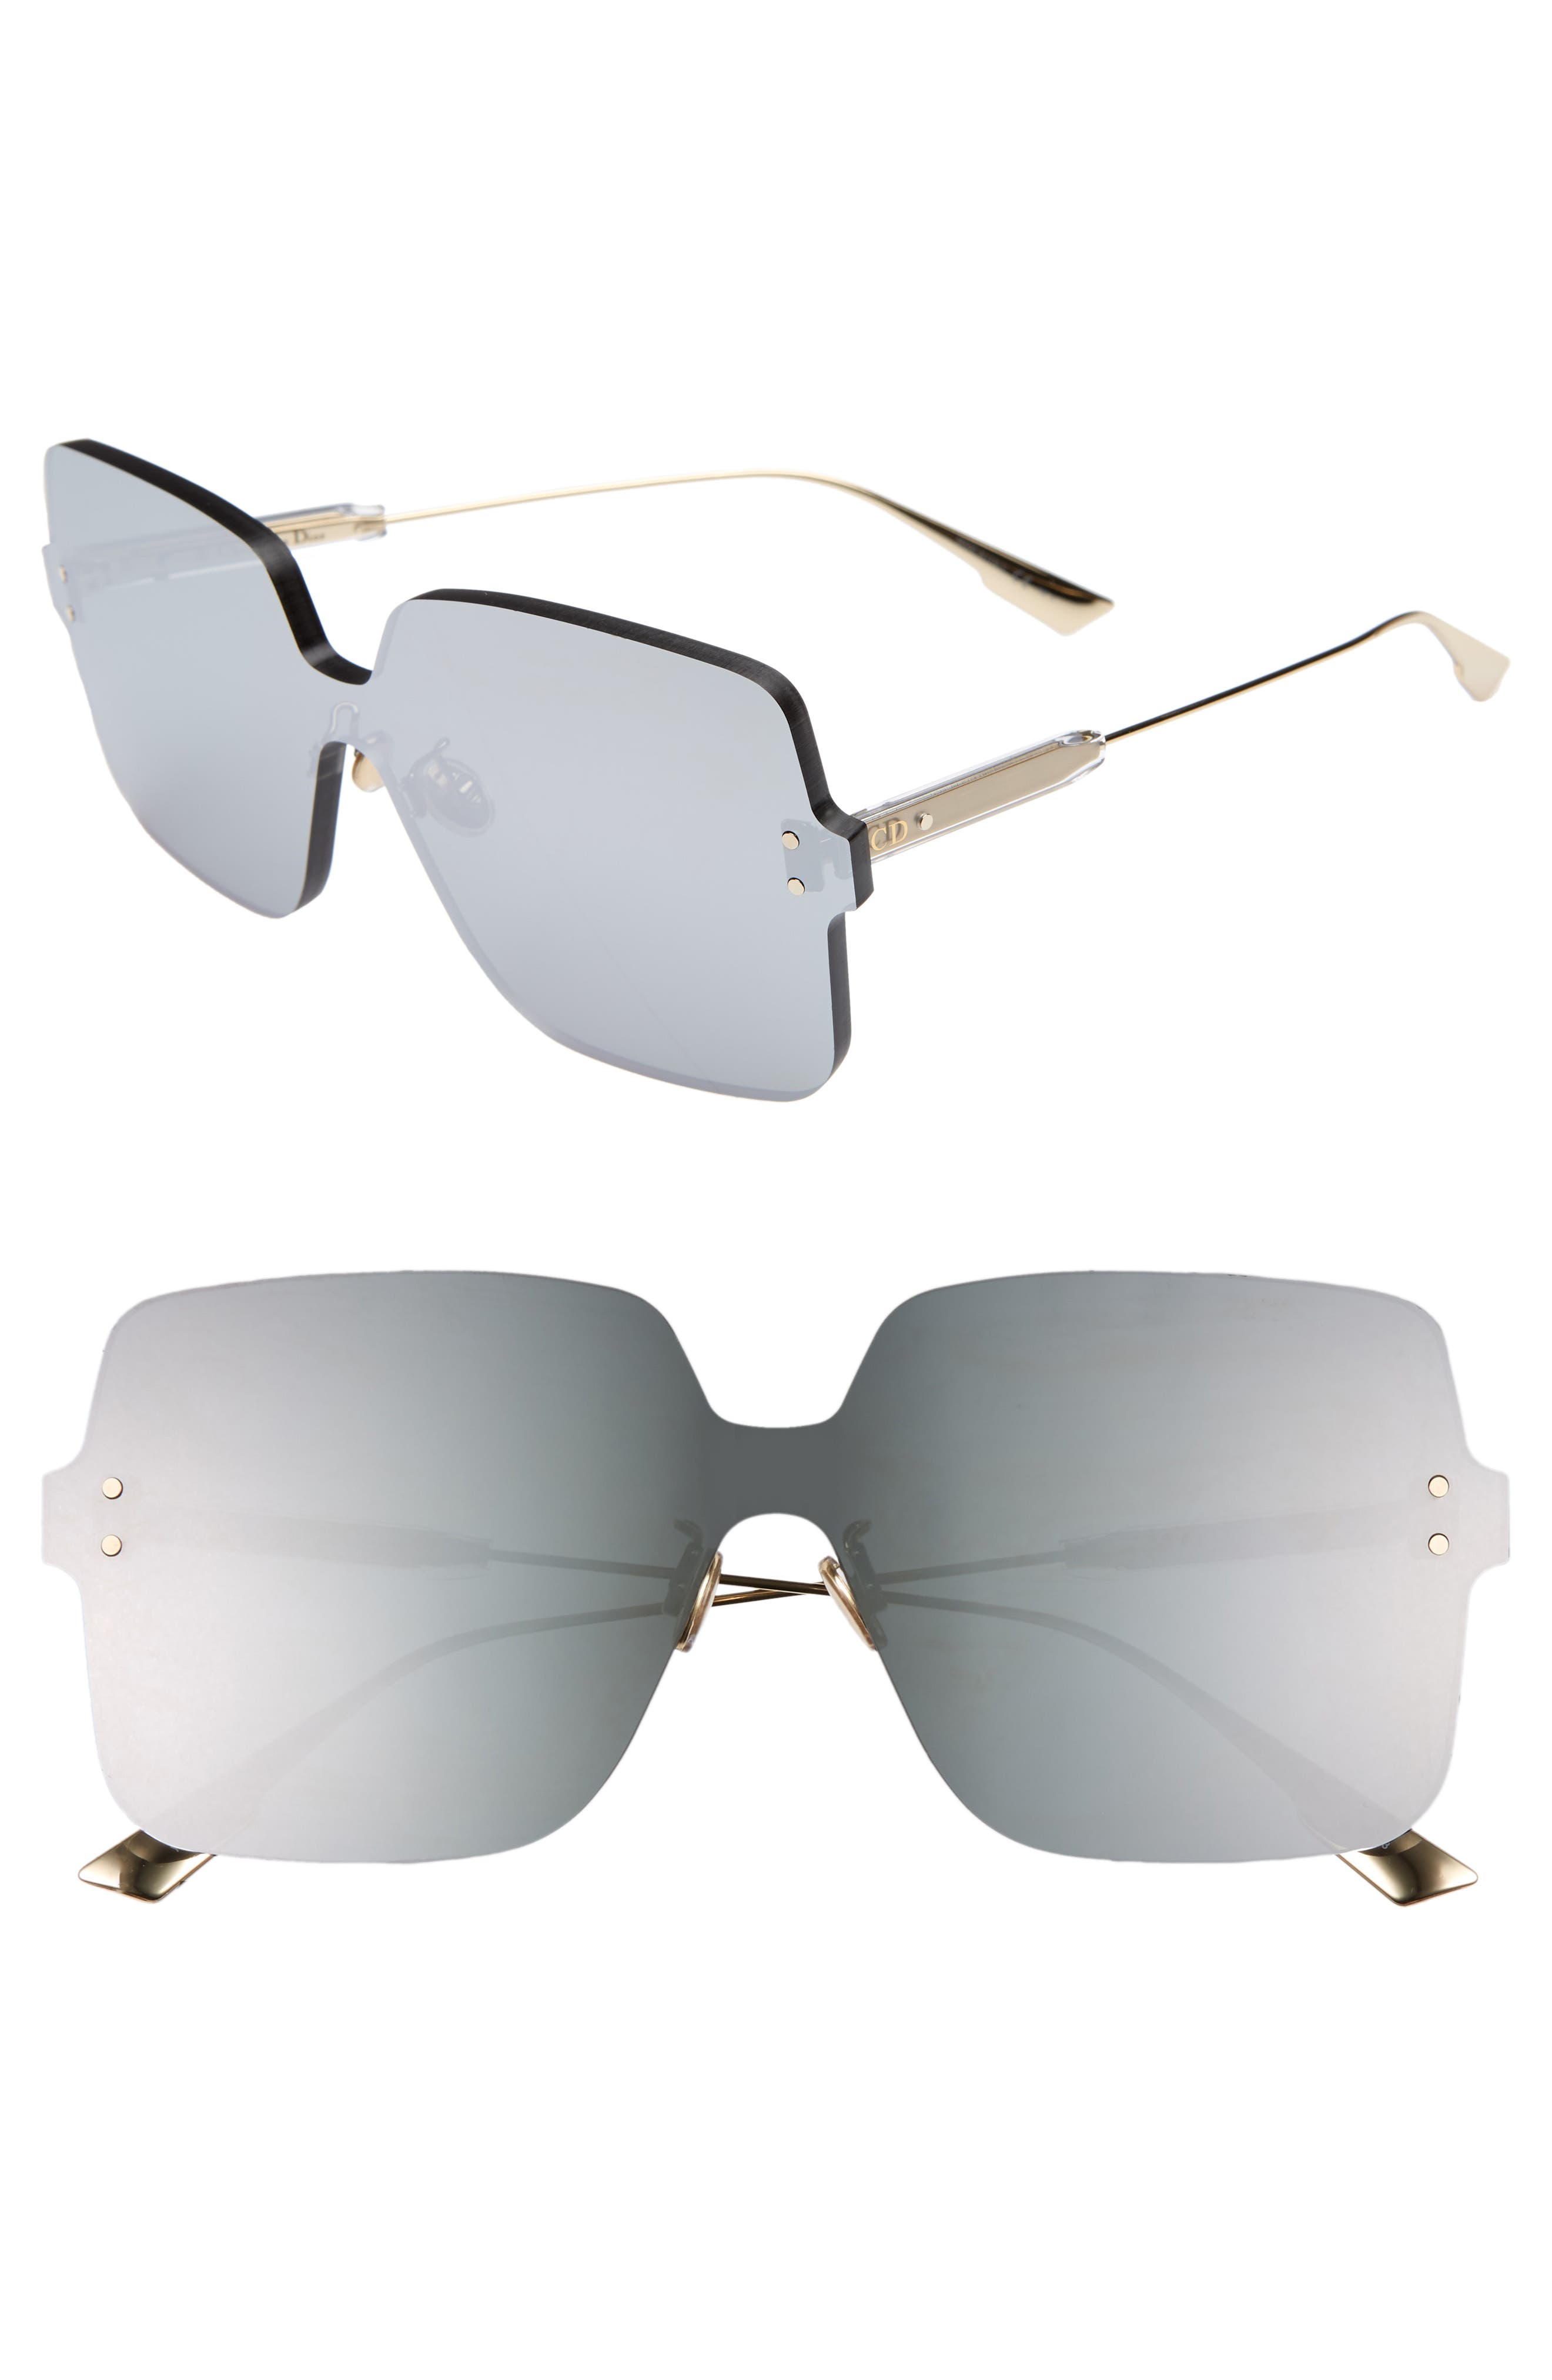 Christian Dior Quake1 147Mm Square Rimless Shield Sunglasses - Silver